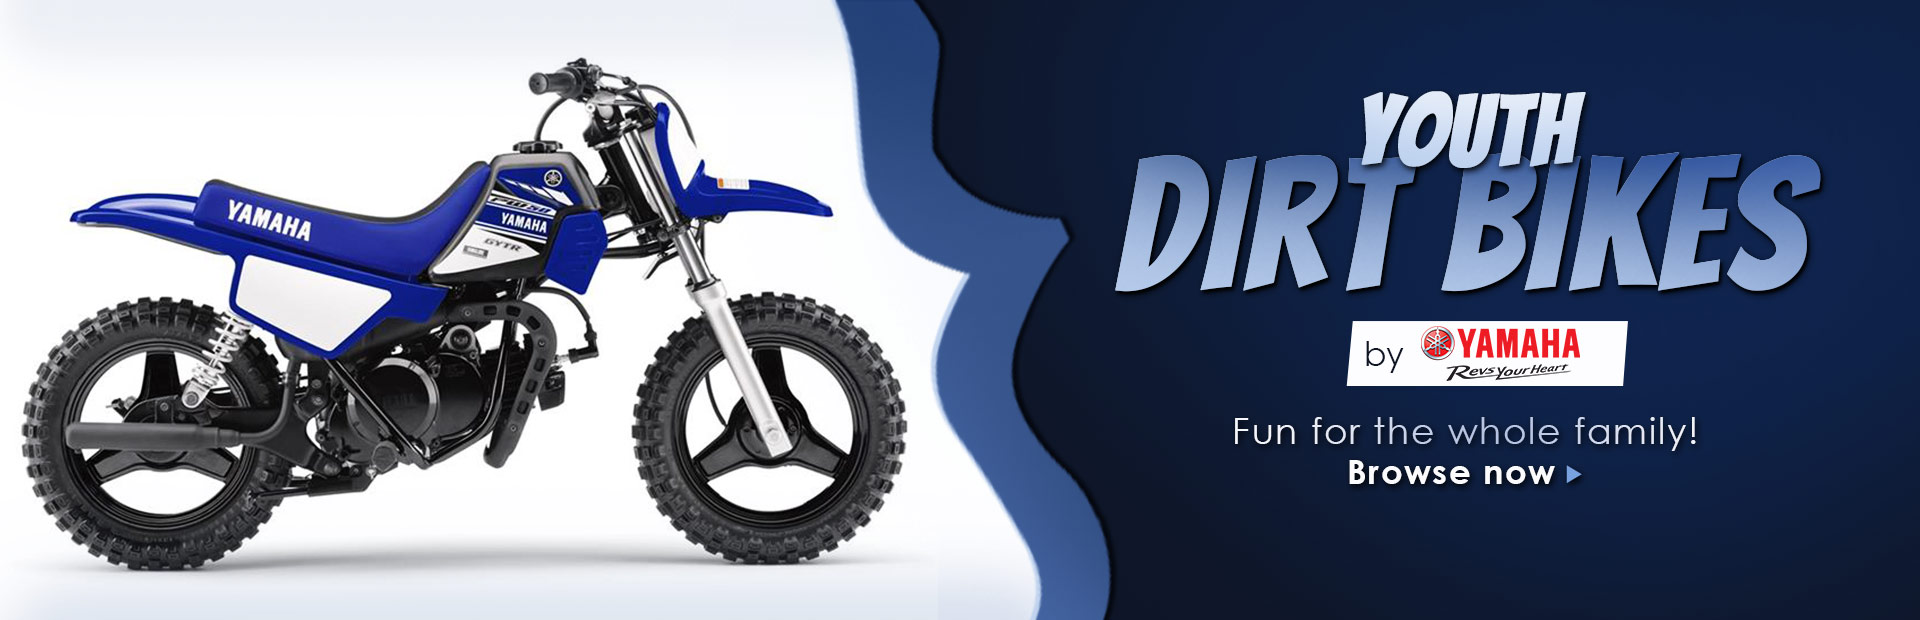 Click here to browse Yamaha youth dirt bikes.